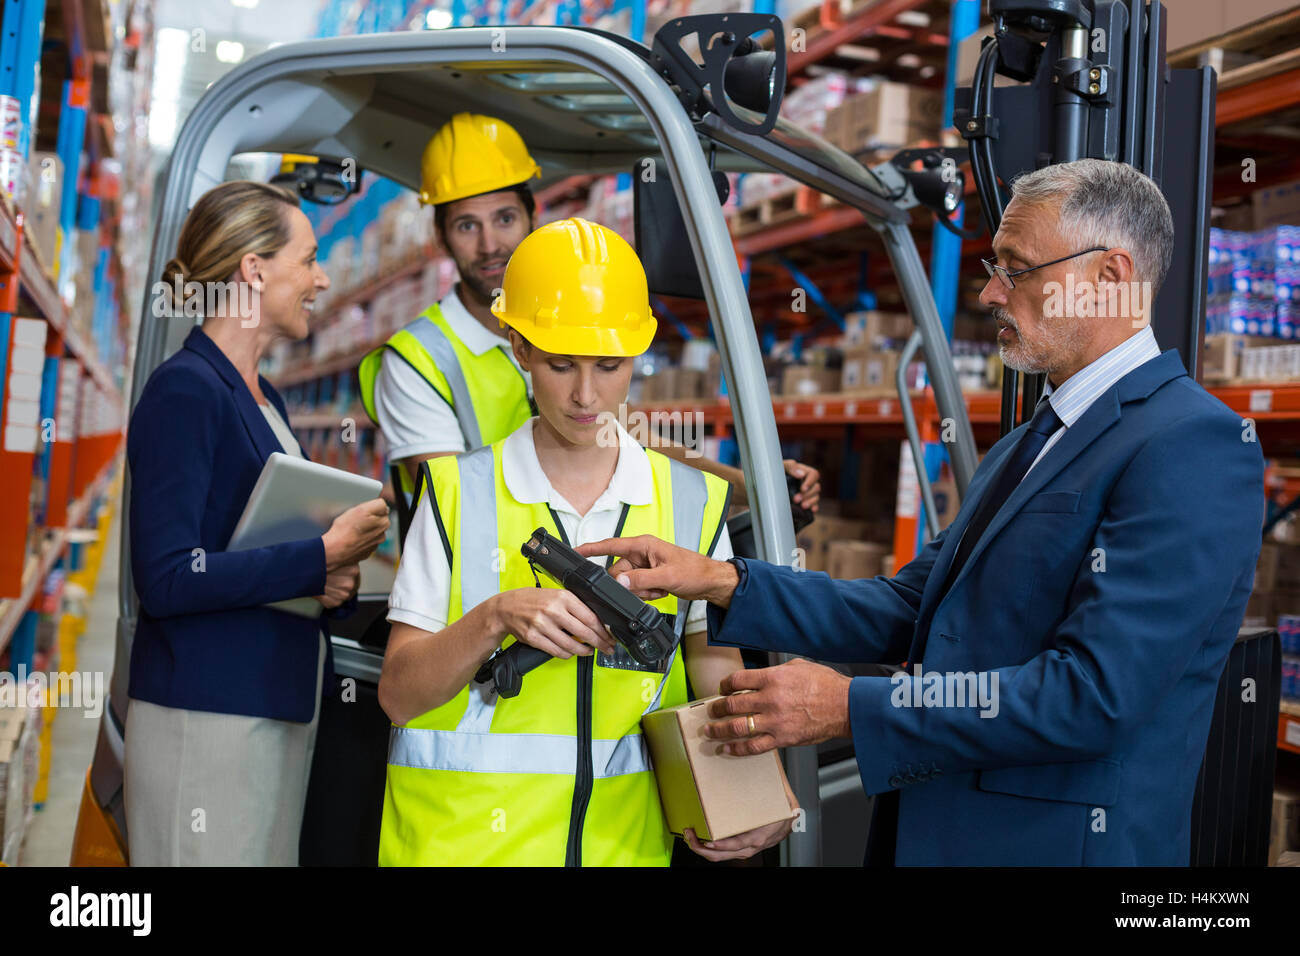 Warehouse manager and client interacting with co-workers Stock Photo